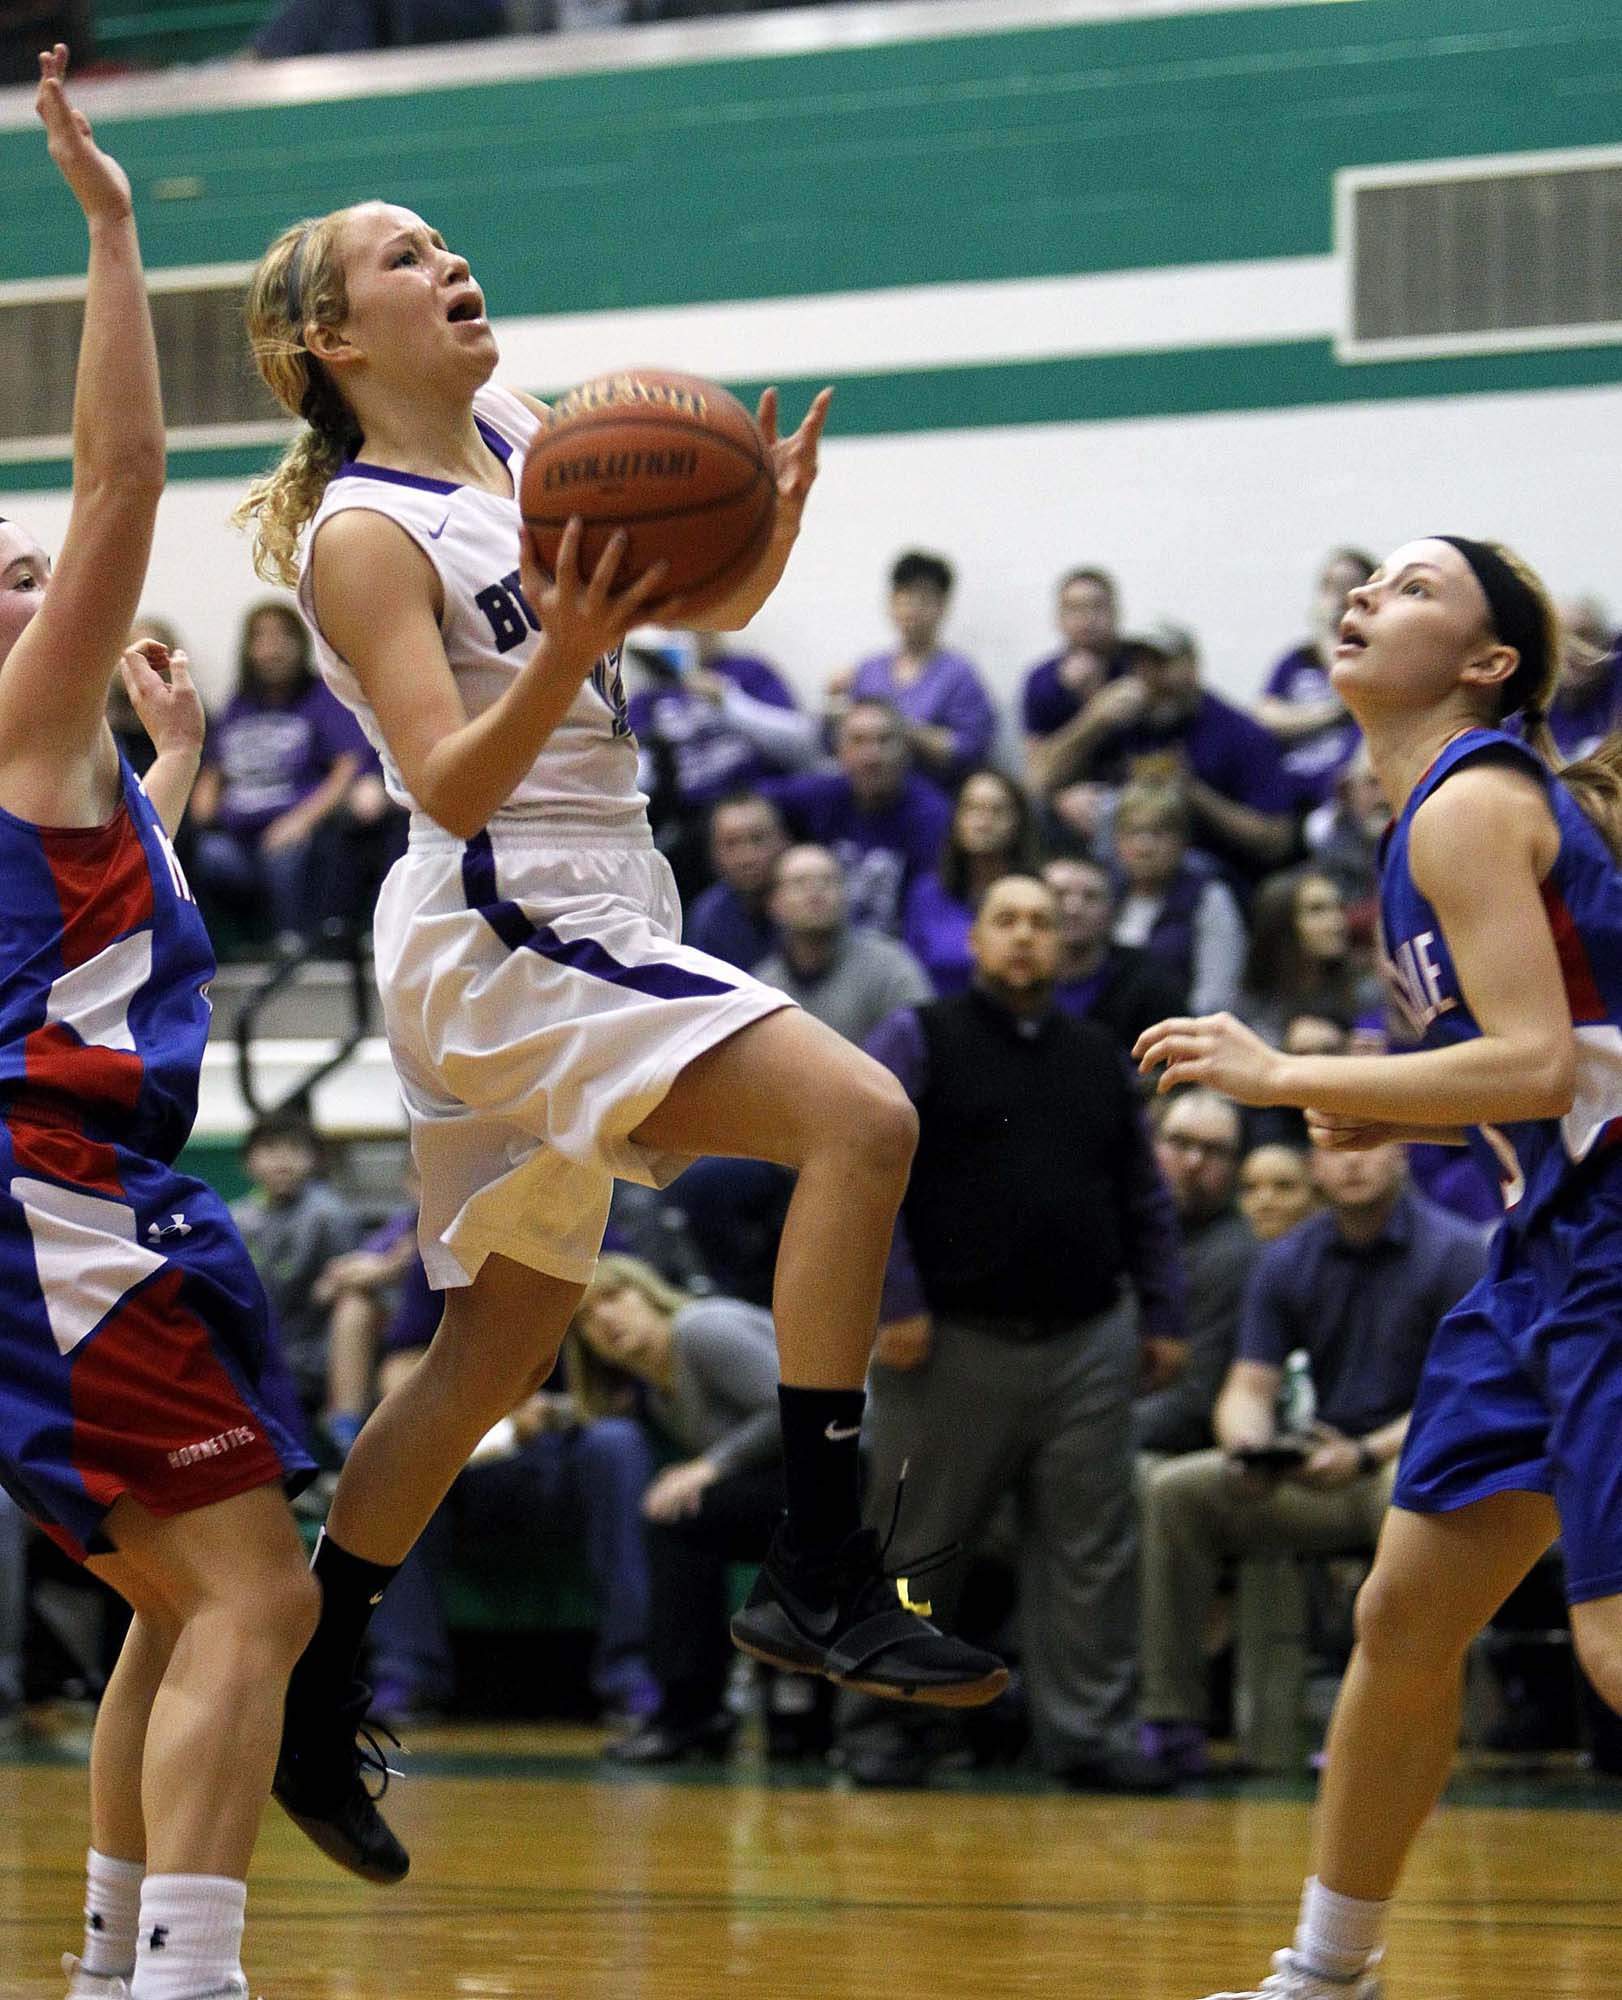 Harrisburg senior point guard Lotte Miller splits the Nashville defense for two of her game-high 17 points in Tuesday night's 43-30 IHSA Class 2A Sectional semifinal win at Hamilton County High School.